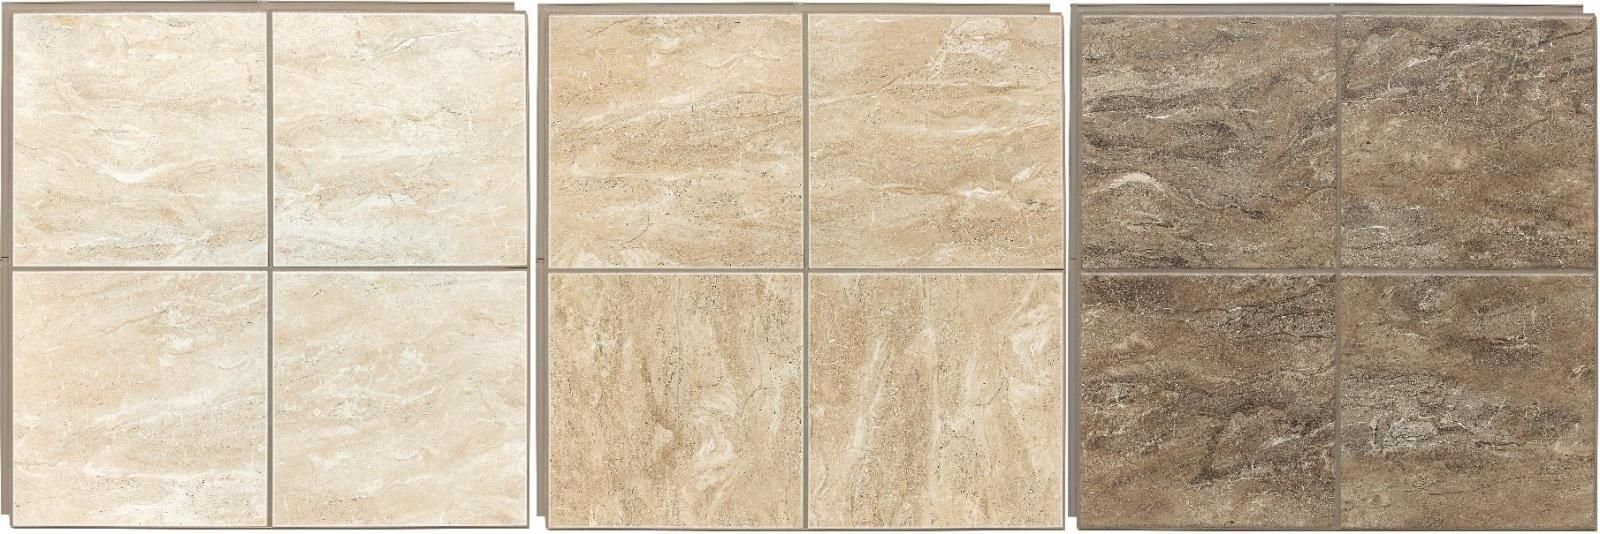 cliks floor tiles no motor or grout